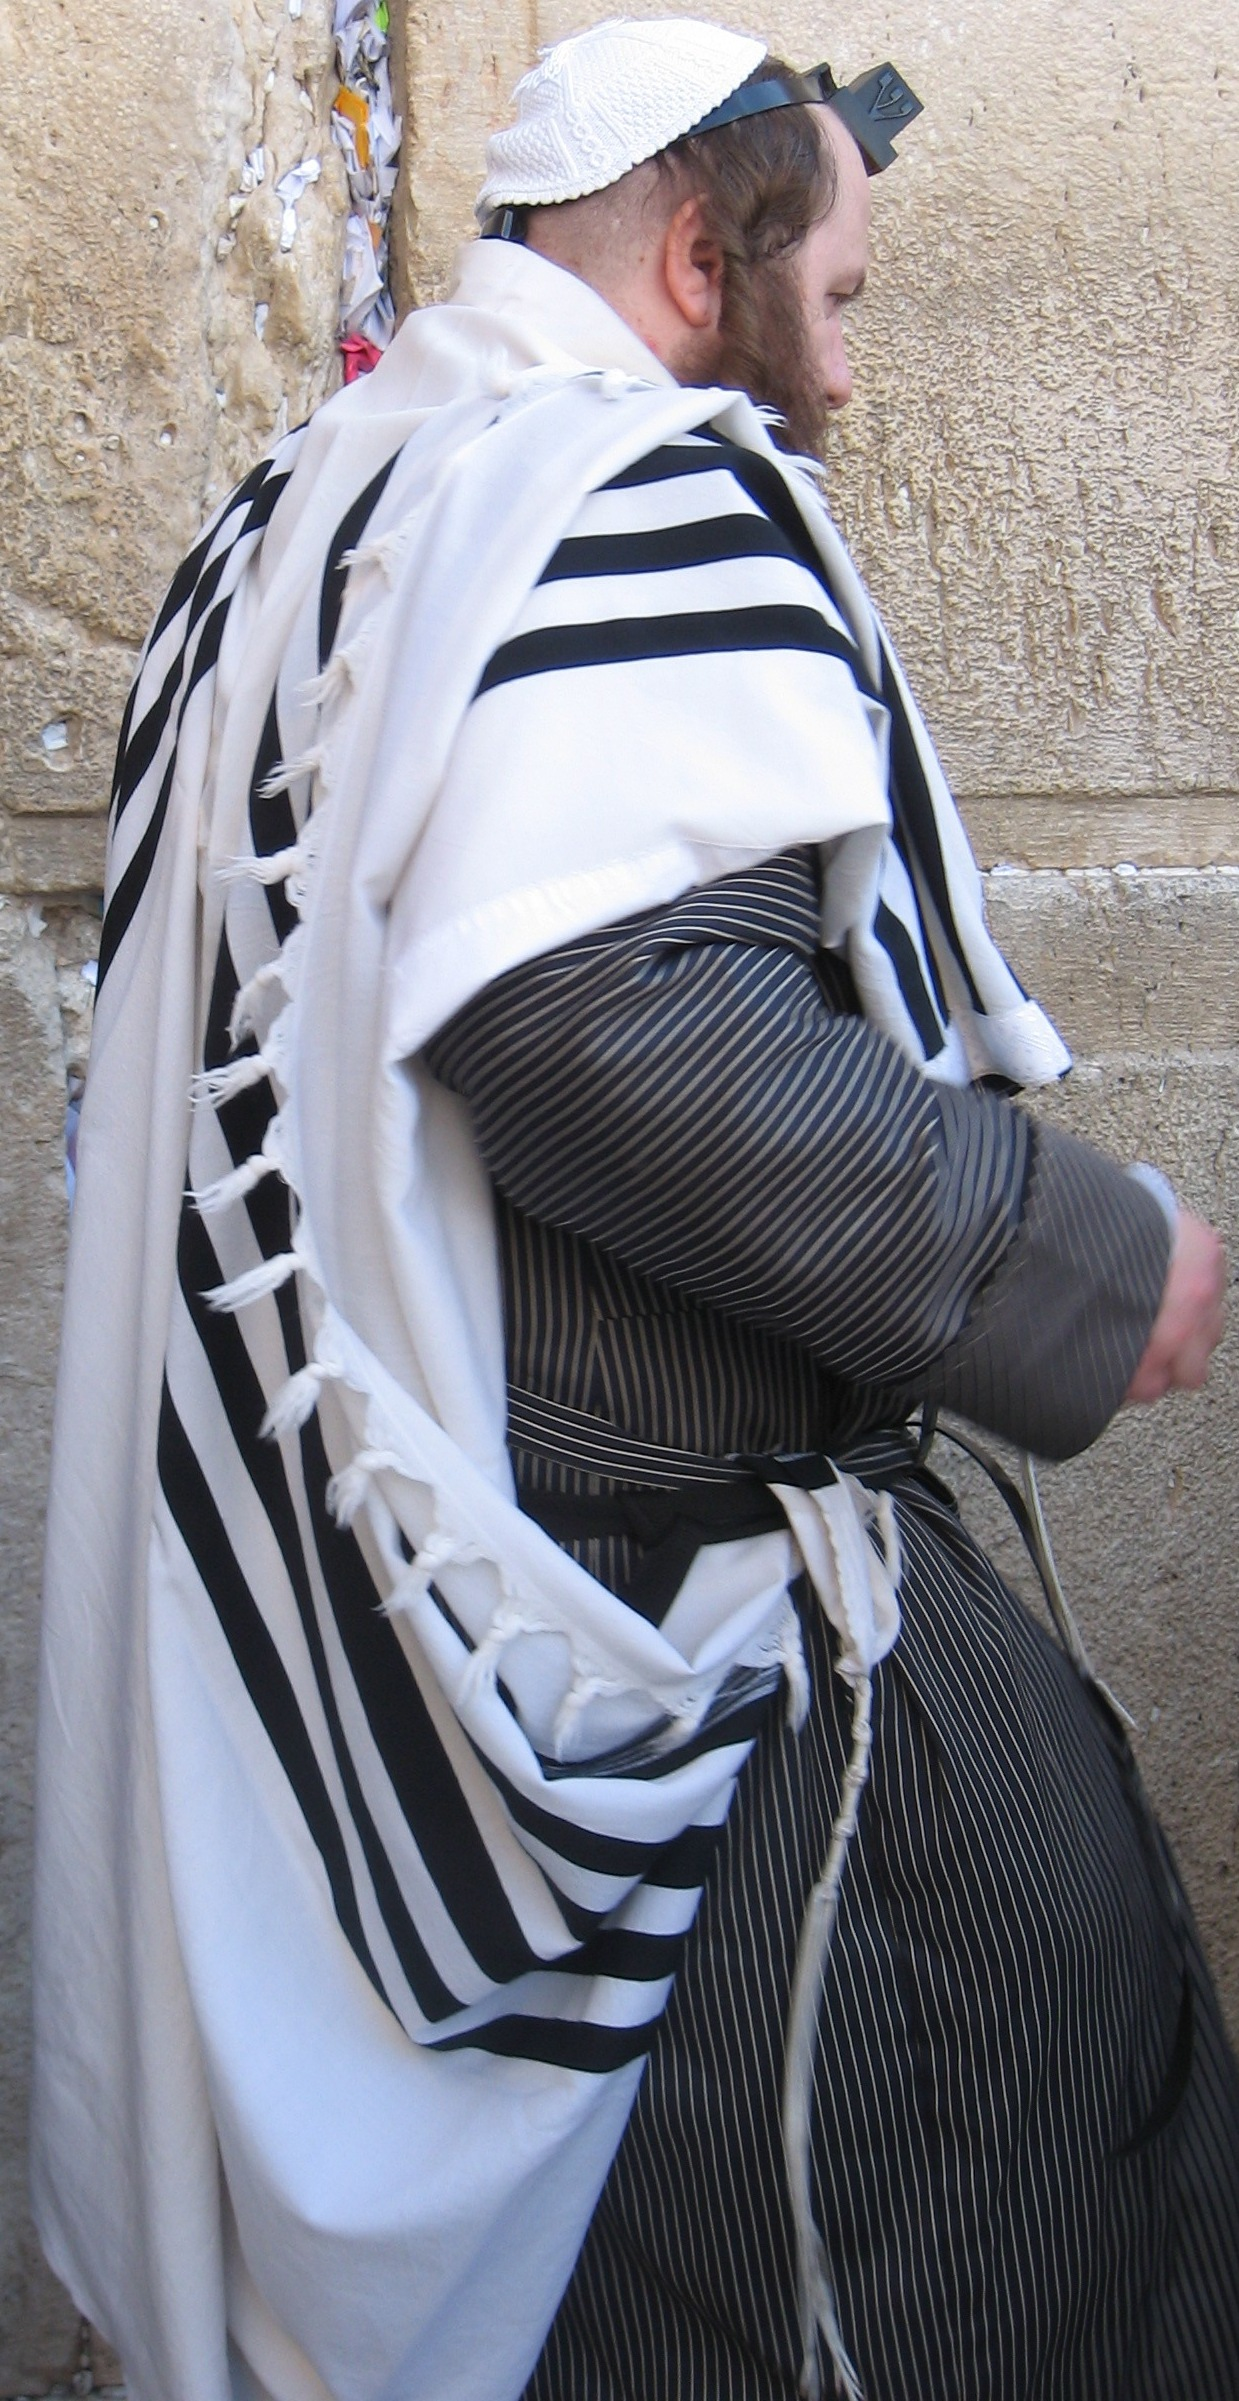 Wonderful Orthodox Jews Clothing To What The Women Wear In